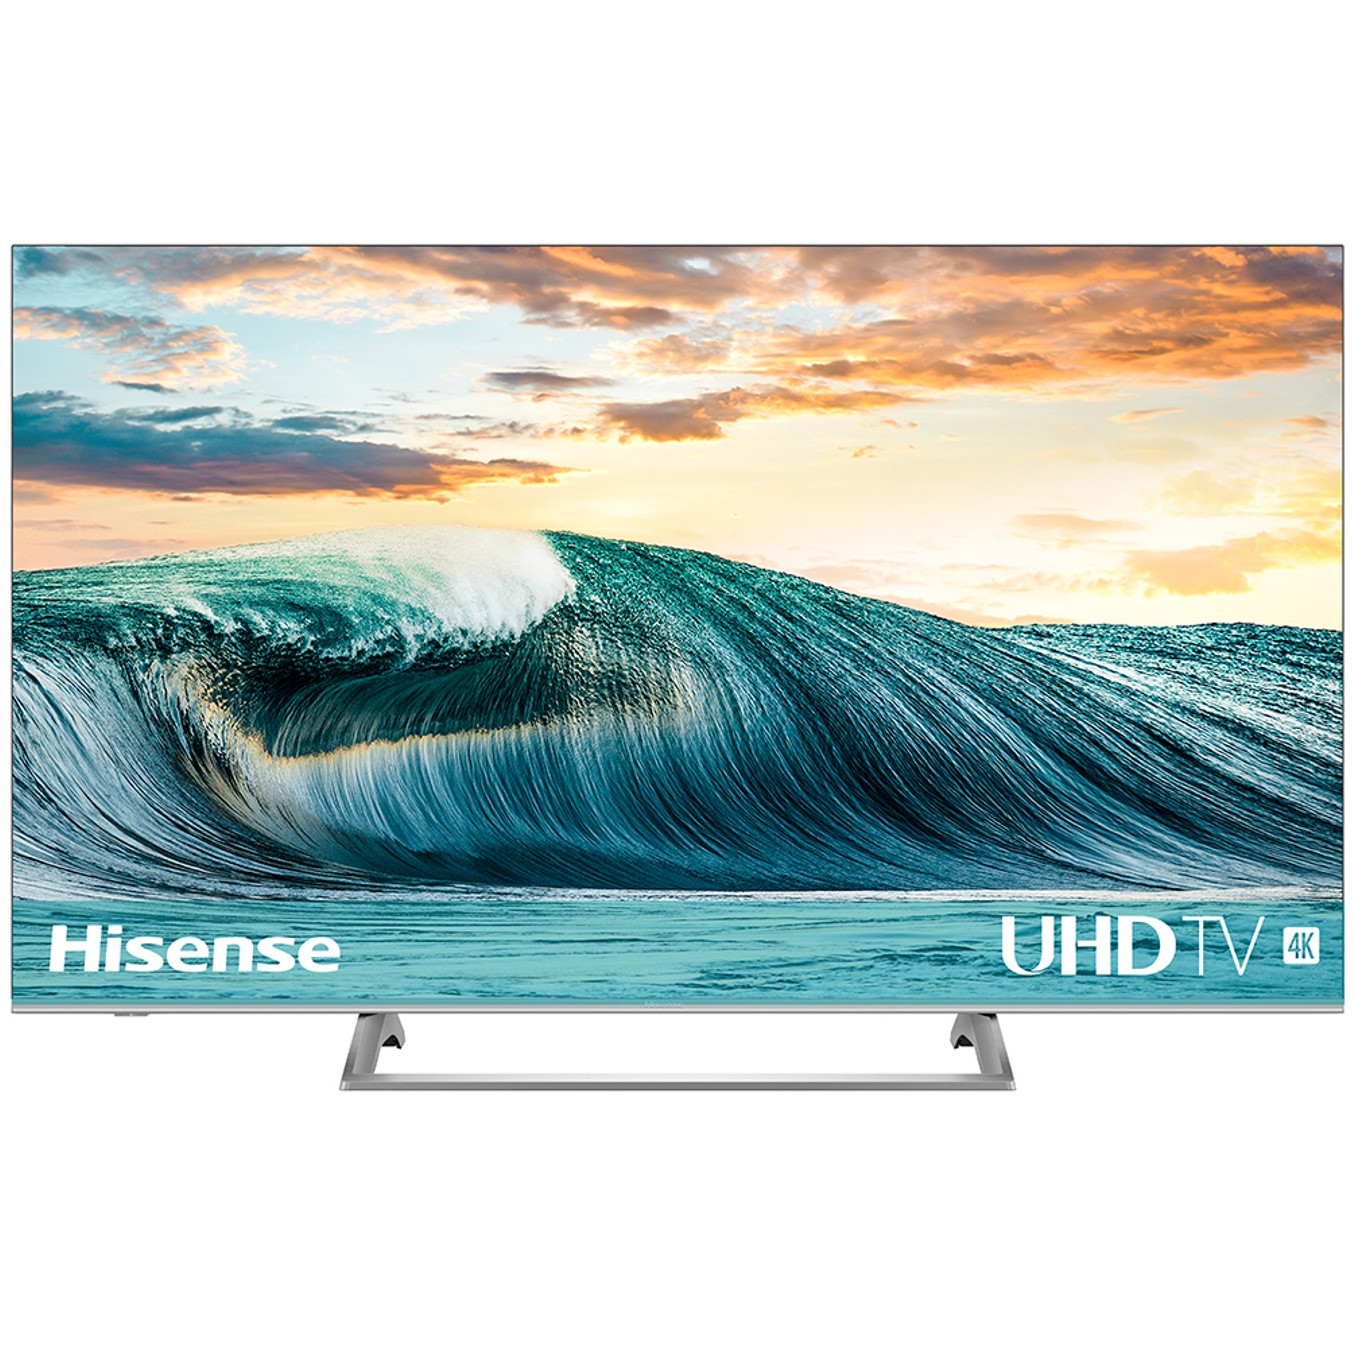 "TV HISENSE 65"" LED 4K UHD/ 65B7500/ HDR10/ SMART TV/ 3 HDMI/ 2 USB/ DVB-T2/T/C/S2/S/ QUAD CORE"